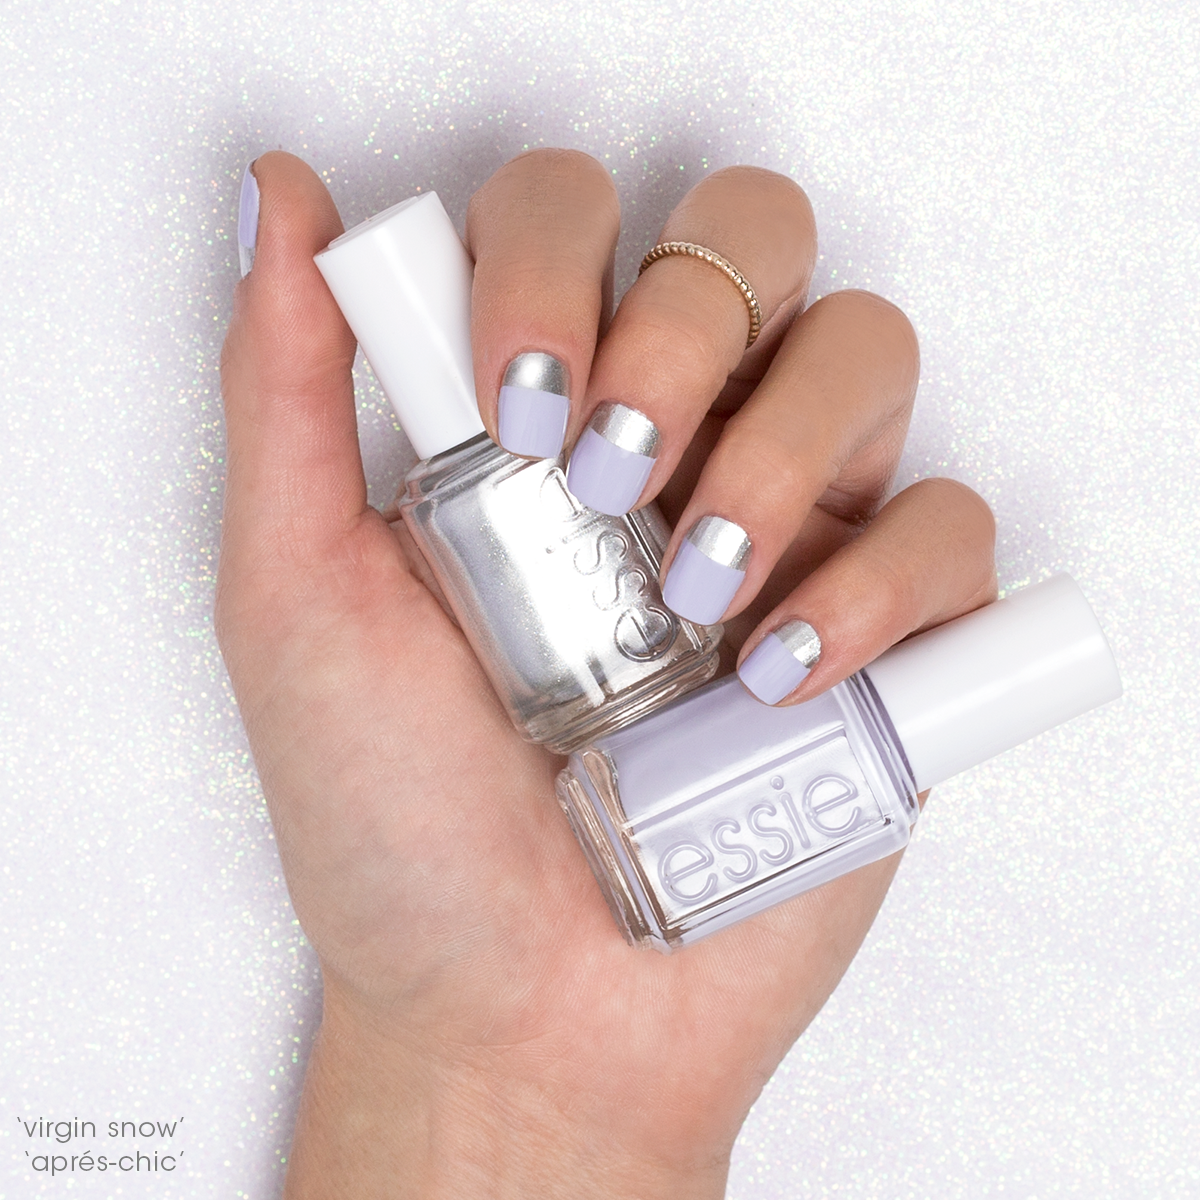 Toast chalet season with a chic contrast mani in... - essie   Haar ...